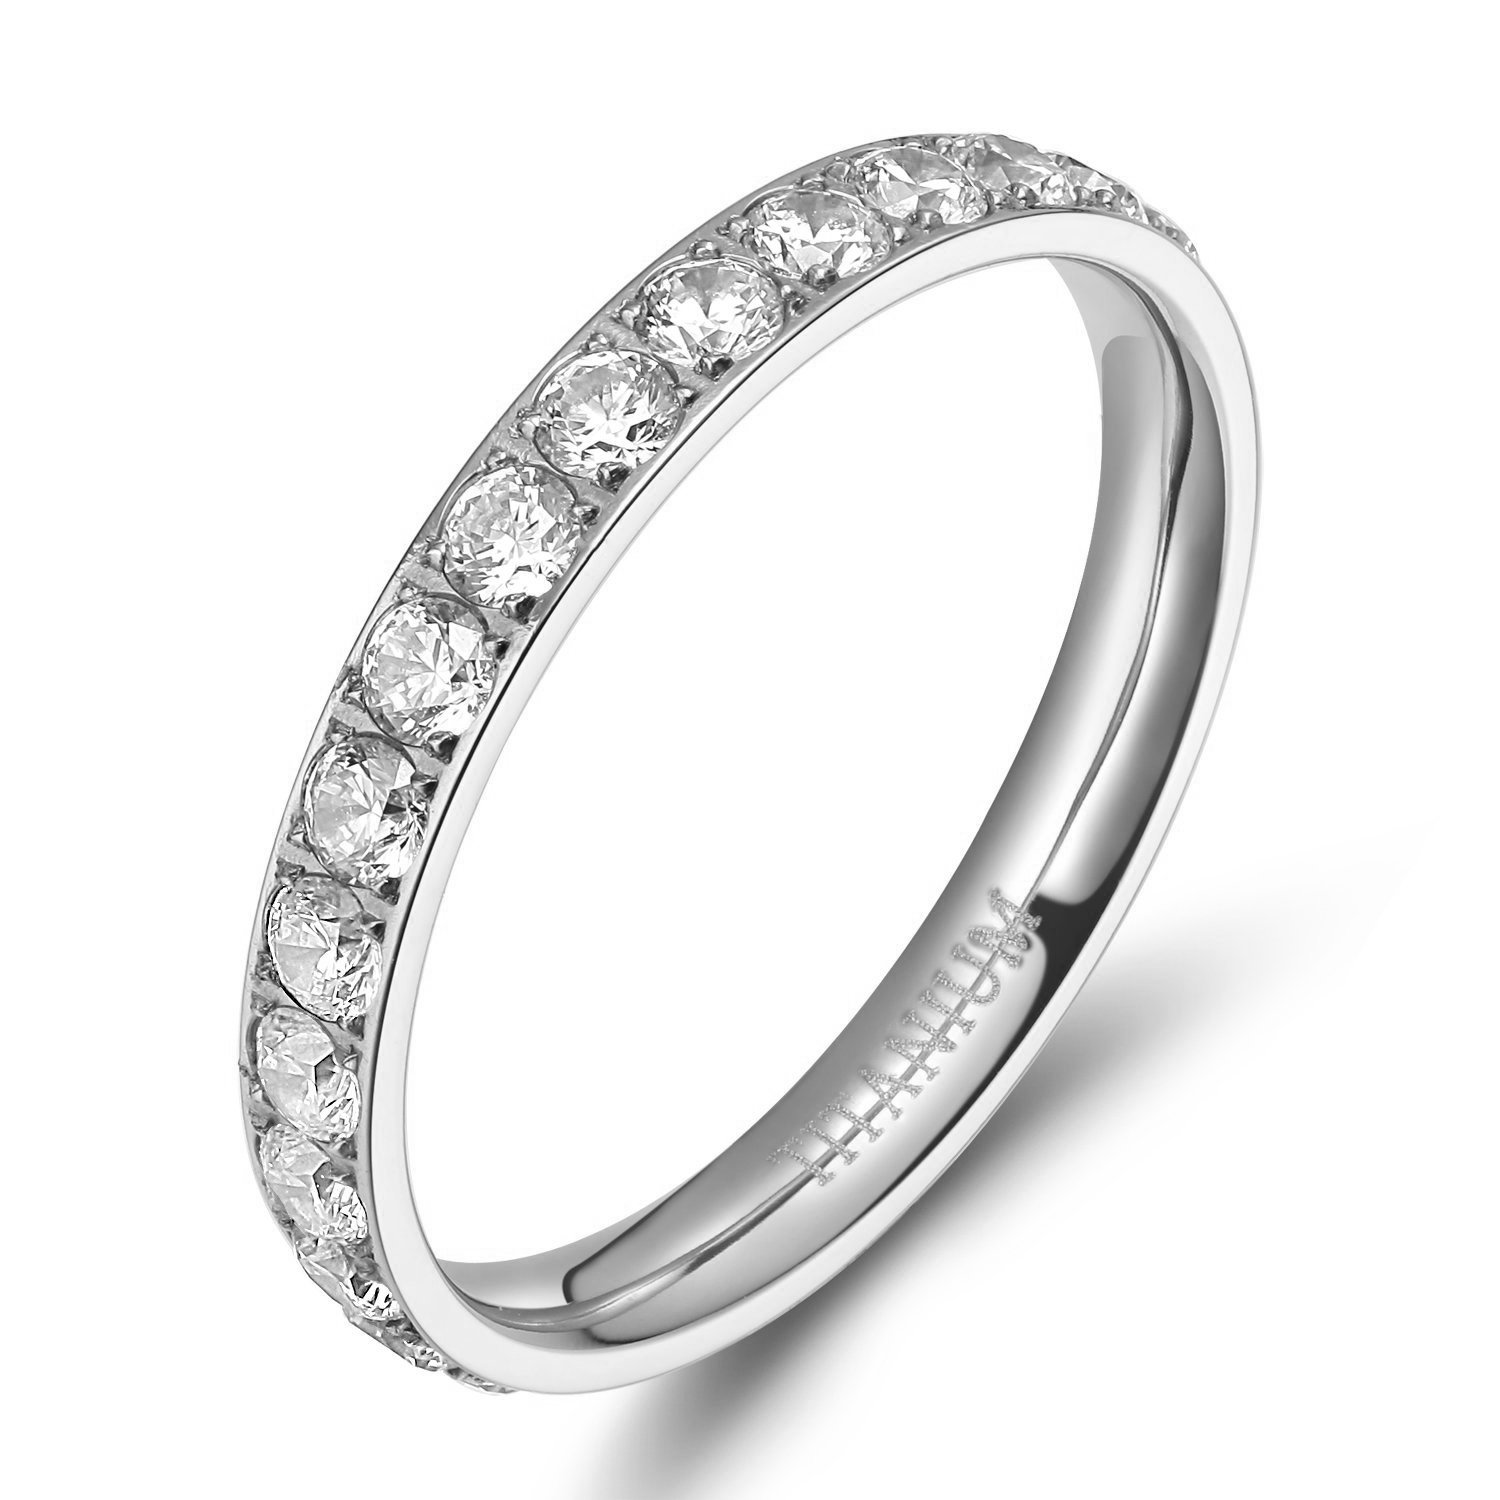 TIGRADE 3mm Women Titanium Engagement Ring Cubic Zirconia Eternity Wedding Band Size 3 to 13.5, Silver, Size 7 by TIGRADE